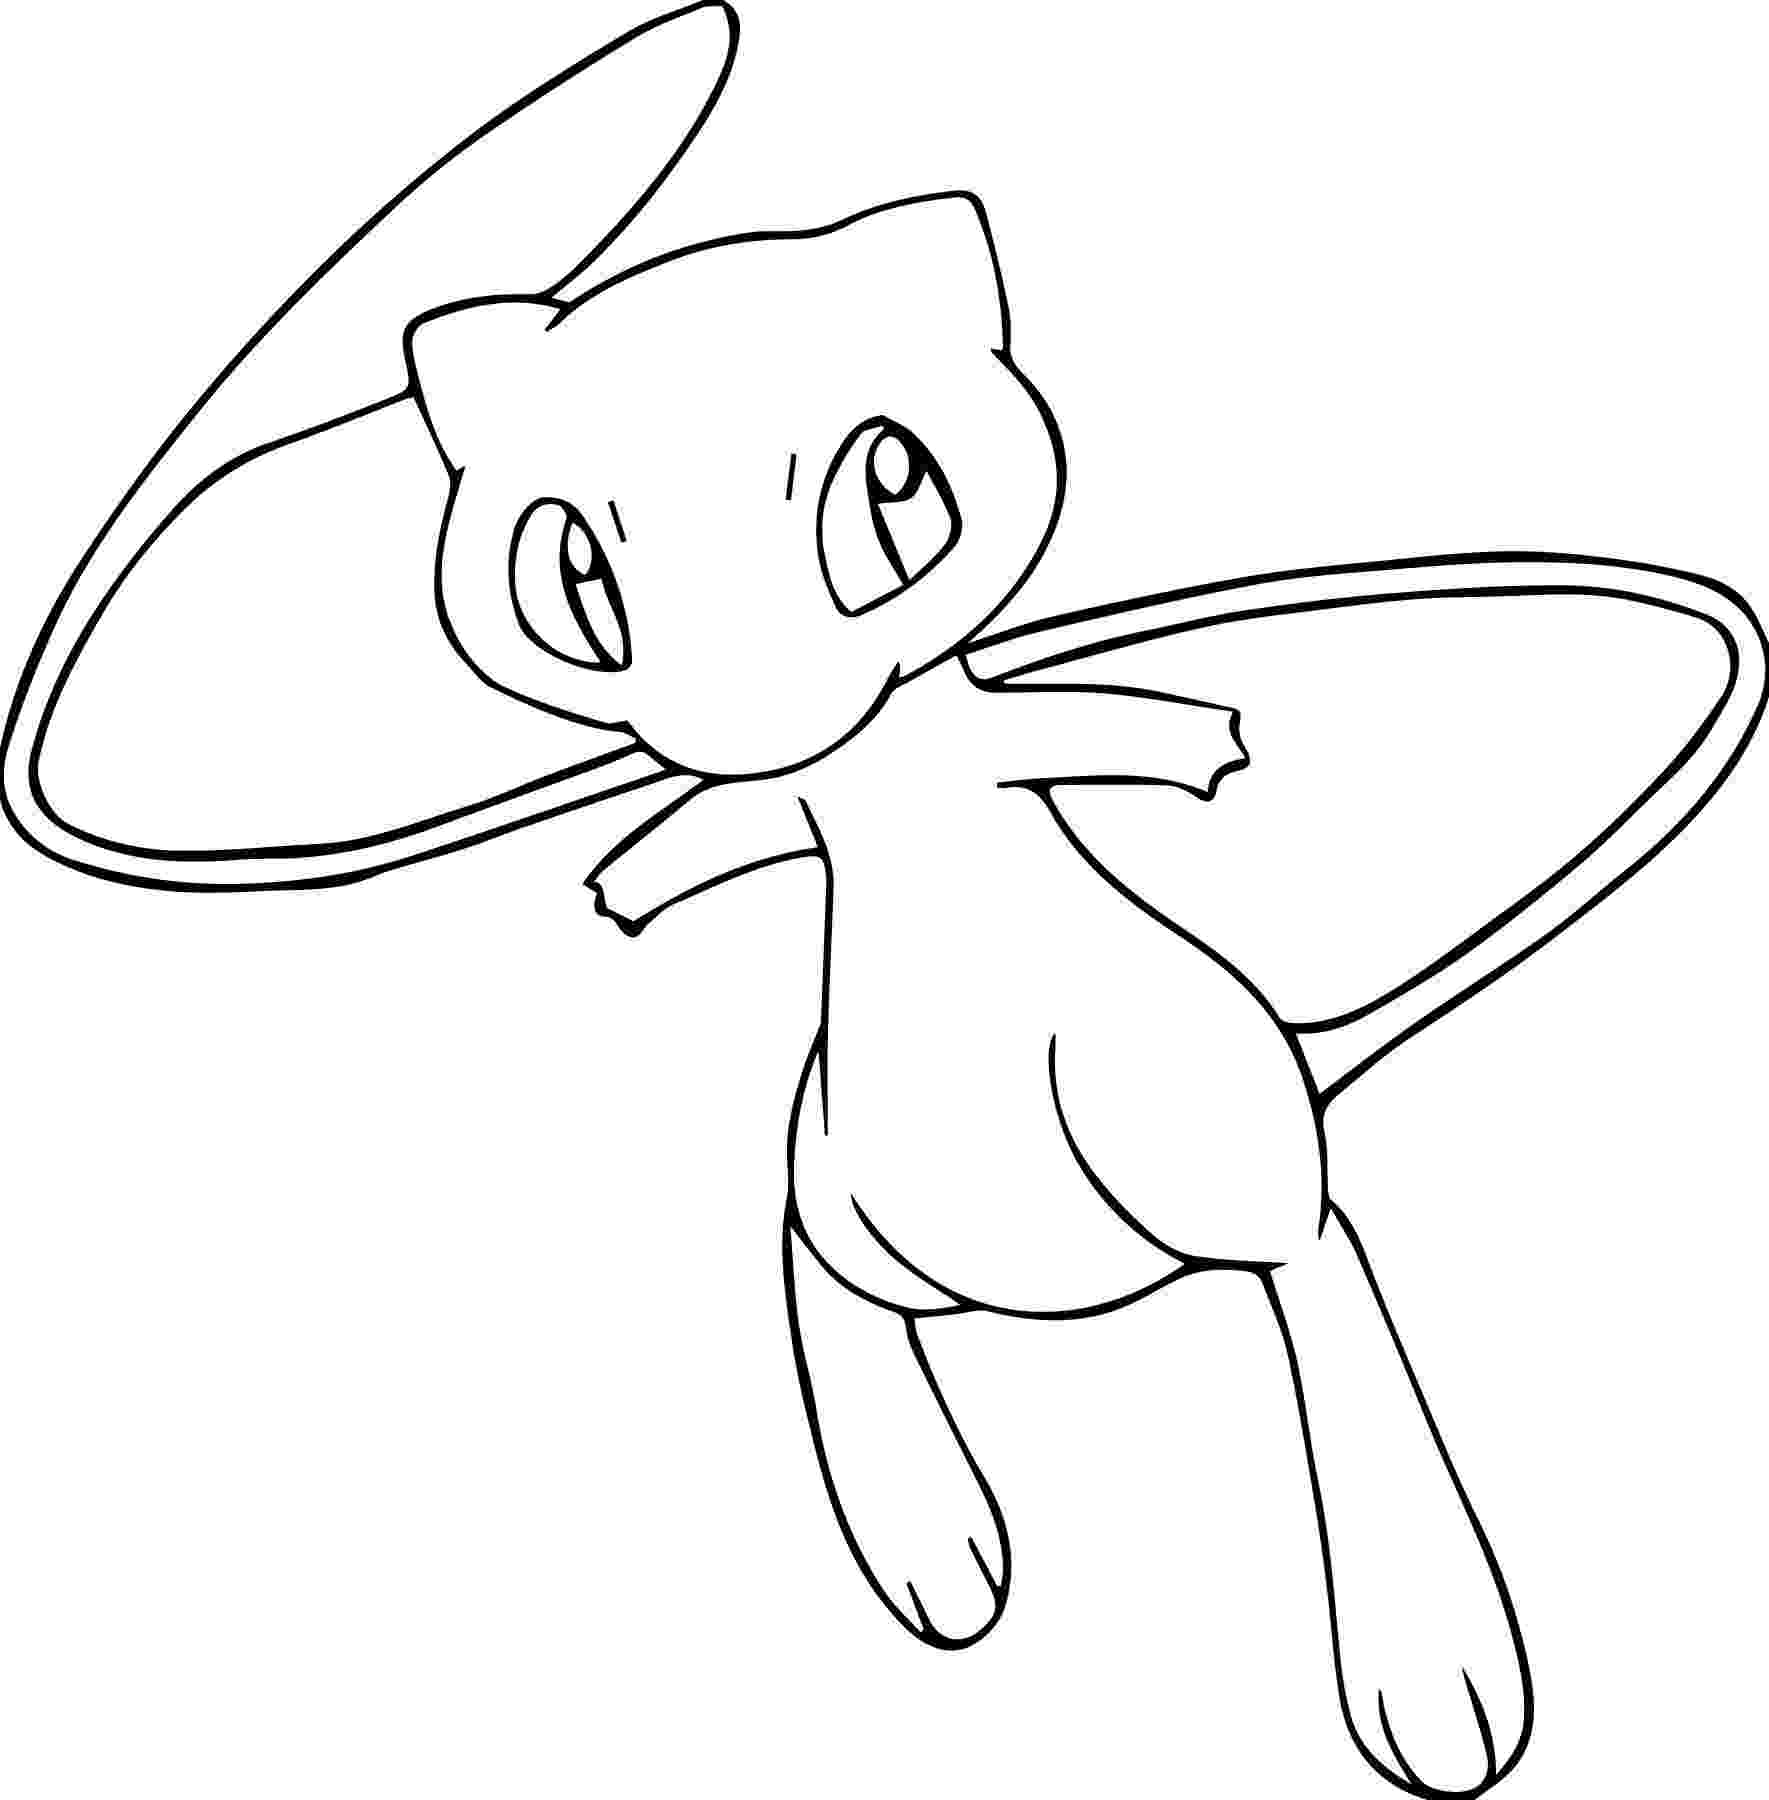 pokemon mew coloring pages pokemon mew coloring page coloring home coloring pages pokemon mew